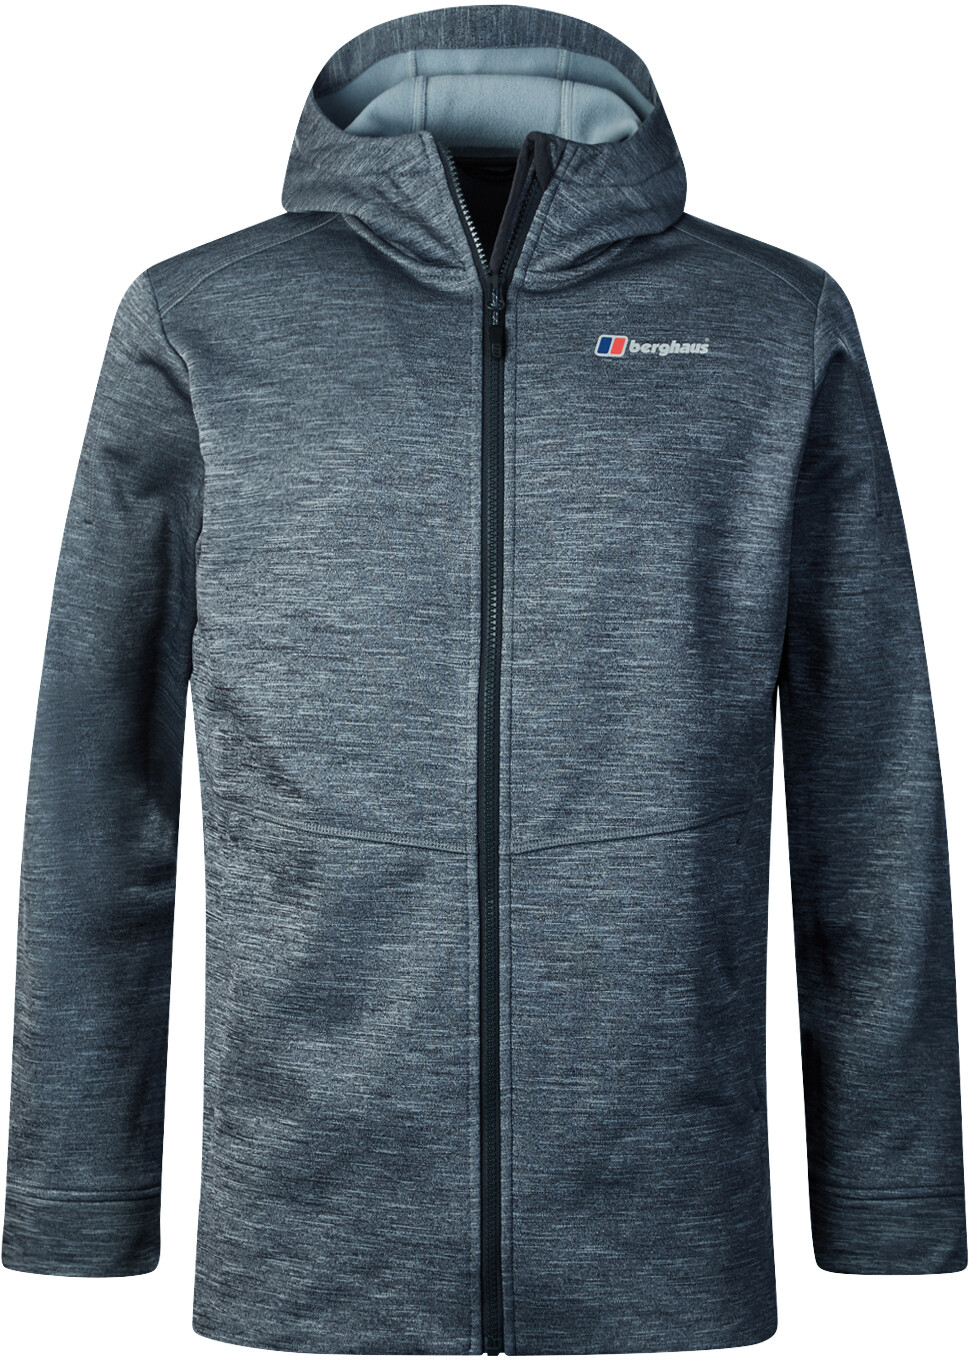 campz.chthe north face tball jacket women multi